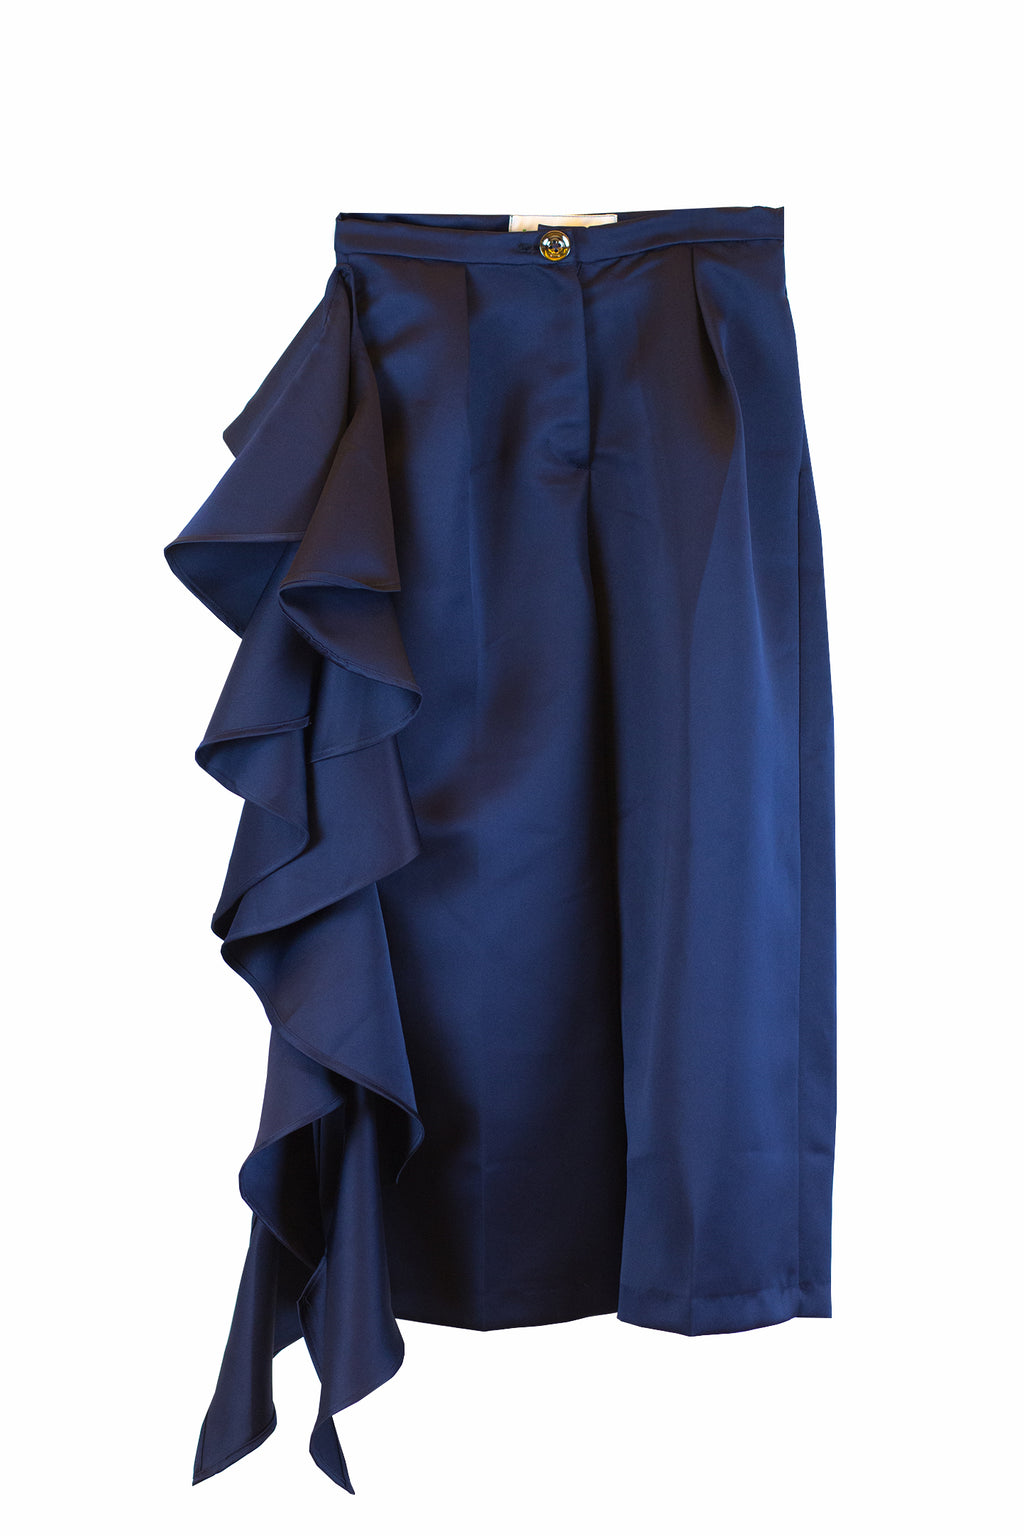 Blue trouser with side ruffles